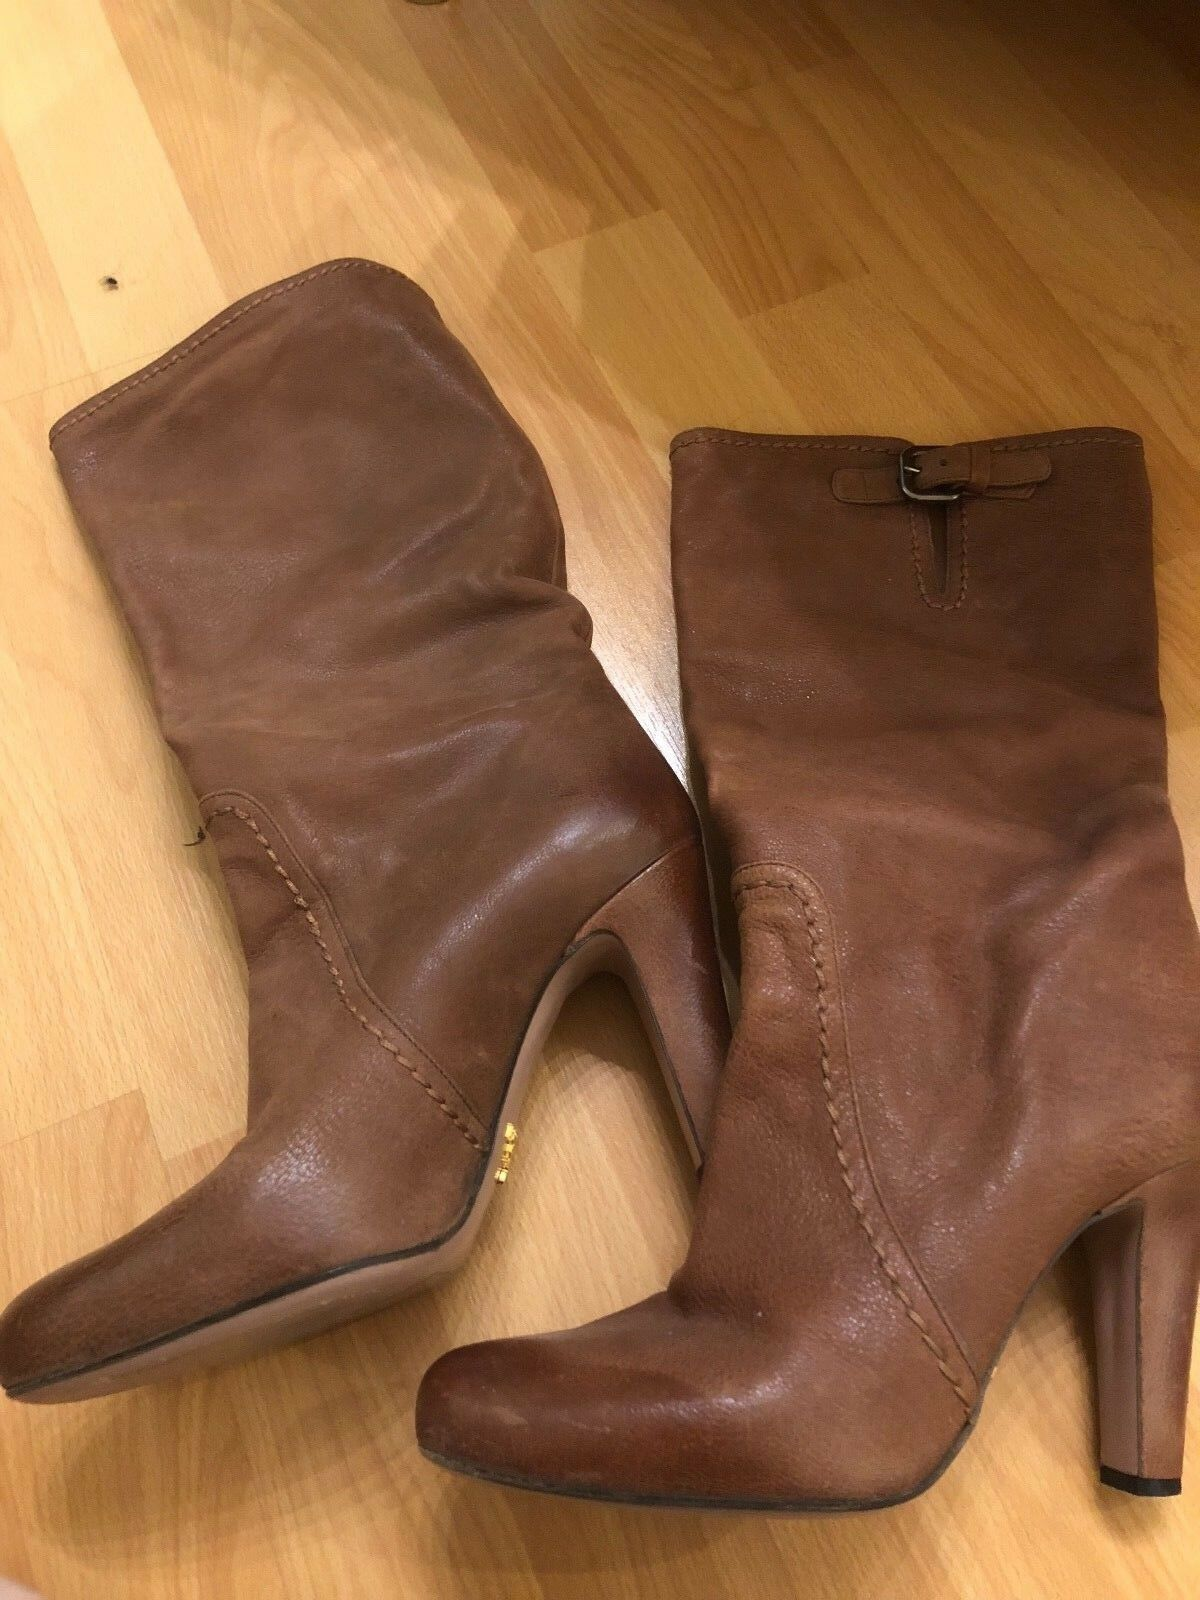 Preowned PRADA Leather Brown High Heel Boots Women's Size 38    SHARWEI